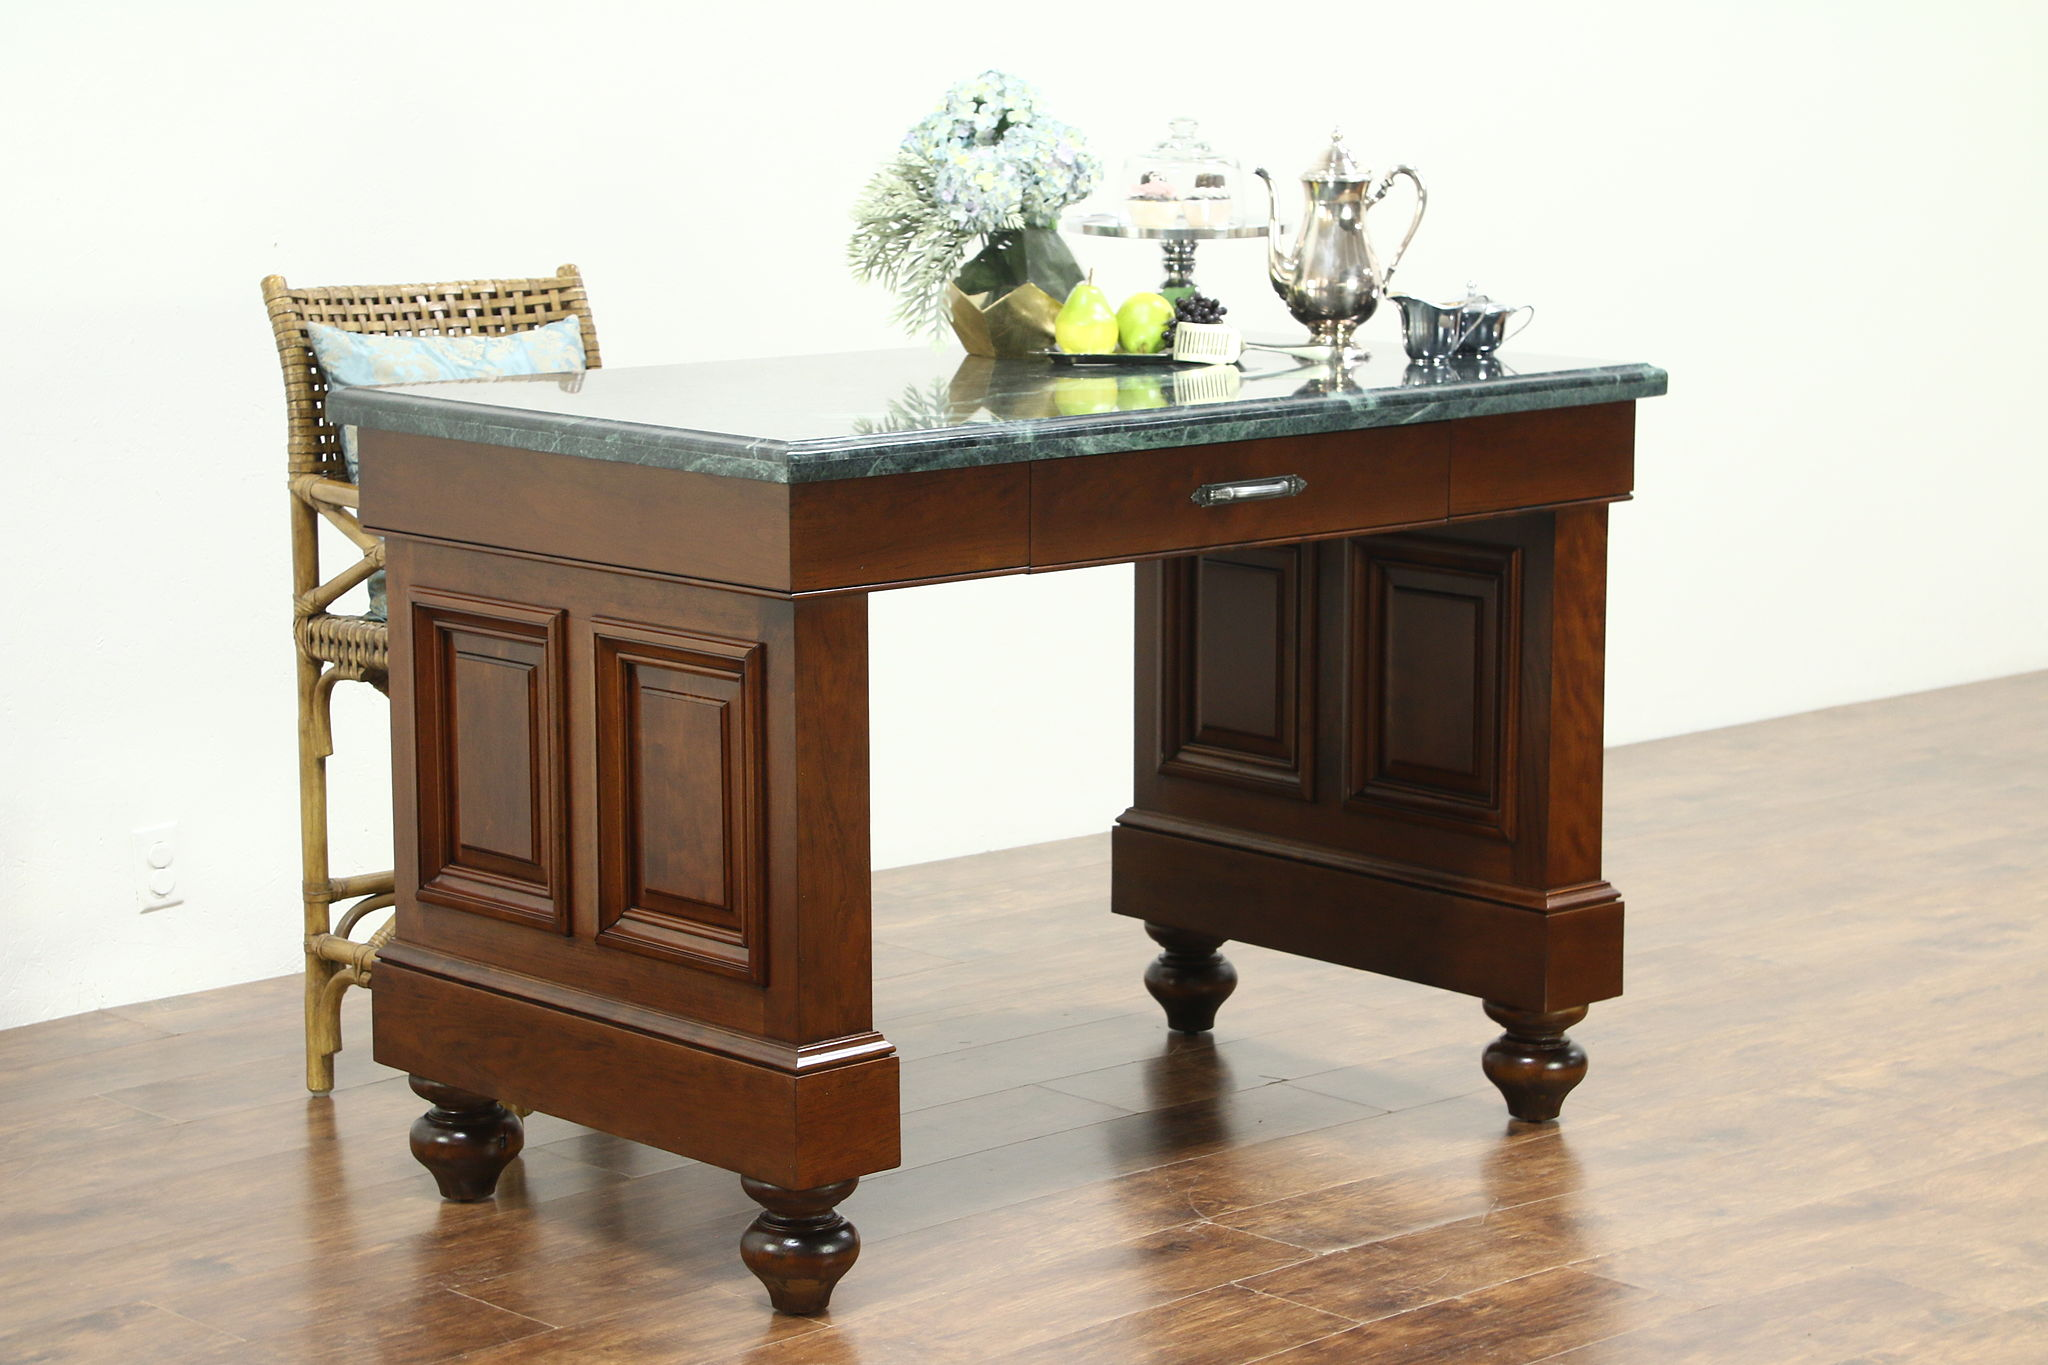 Cherry Vintage Bank Counter Kitchen Island or Wine Tasting Table